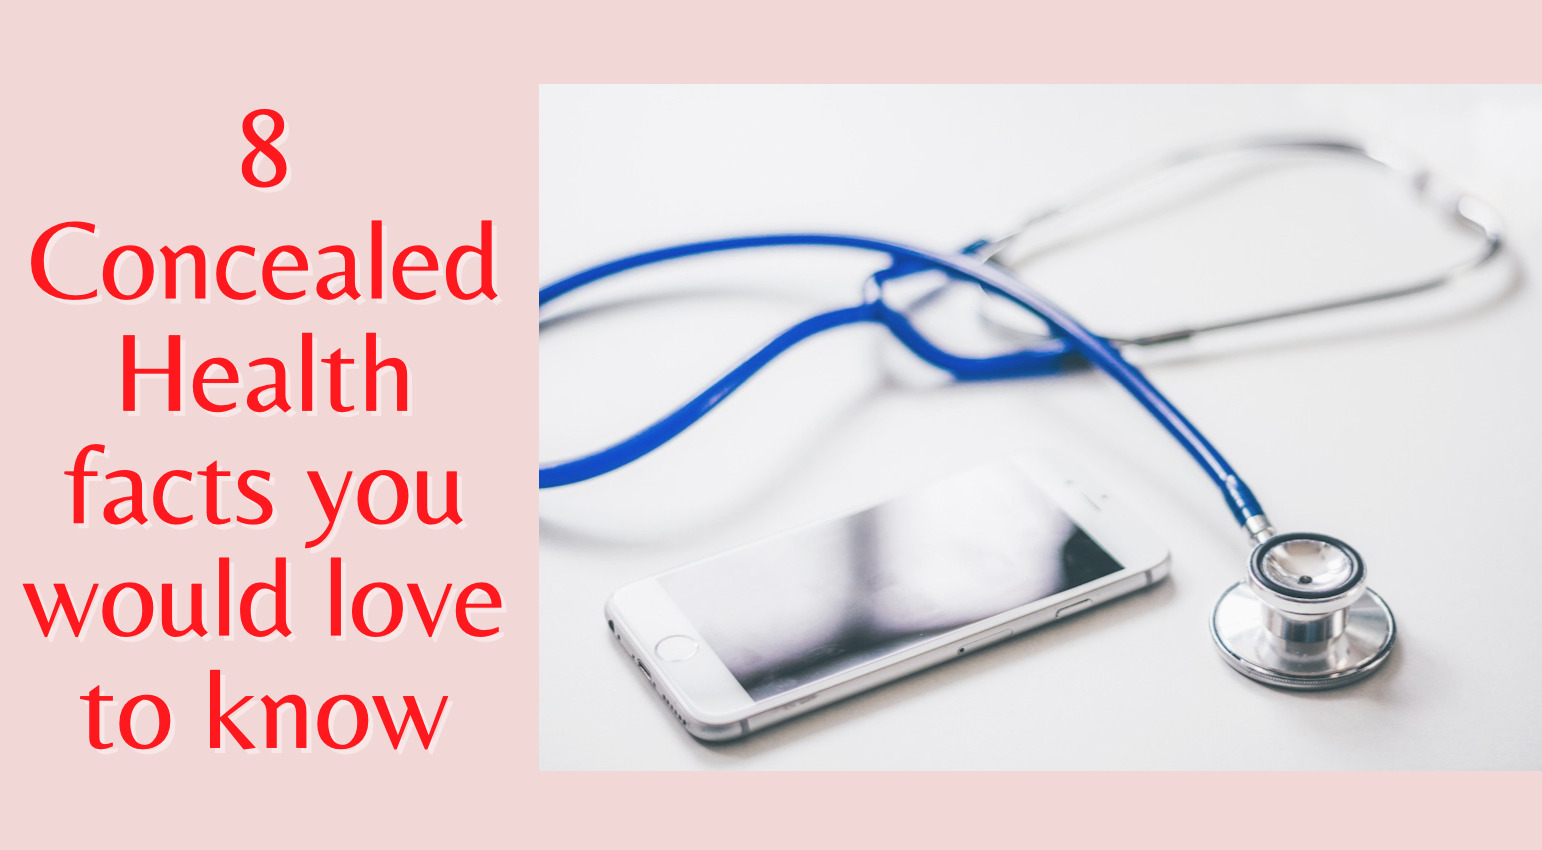 8 Concealed Health facts you would love to know